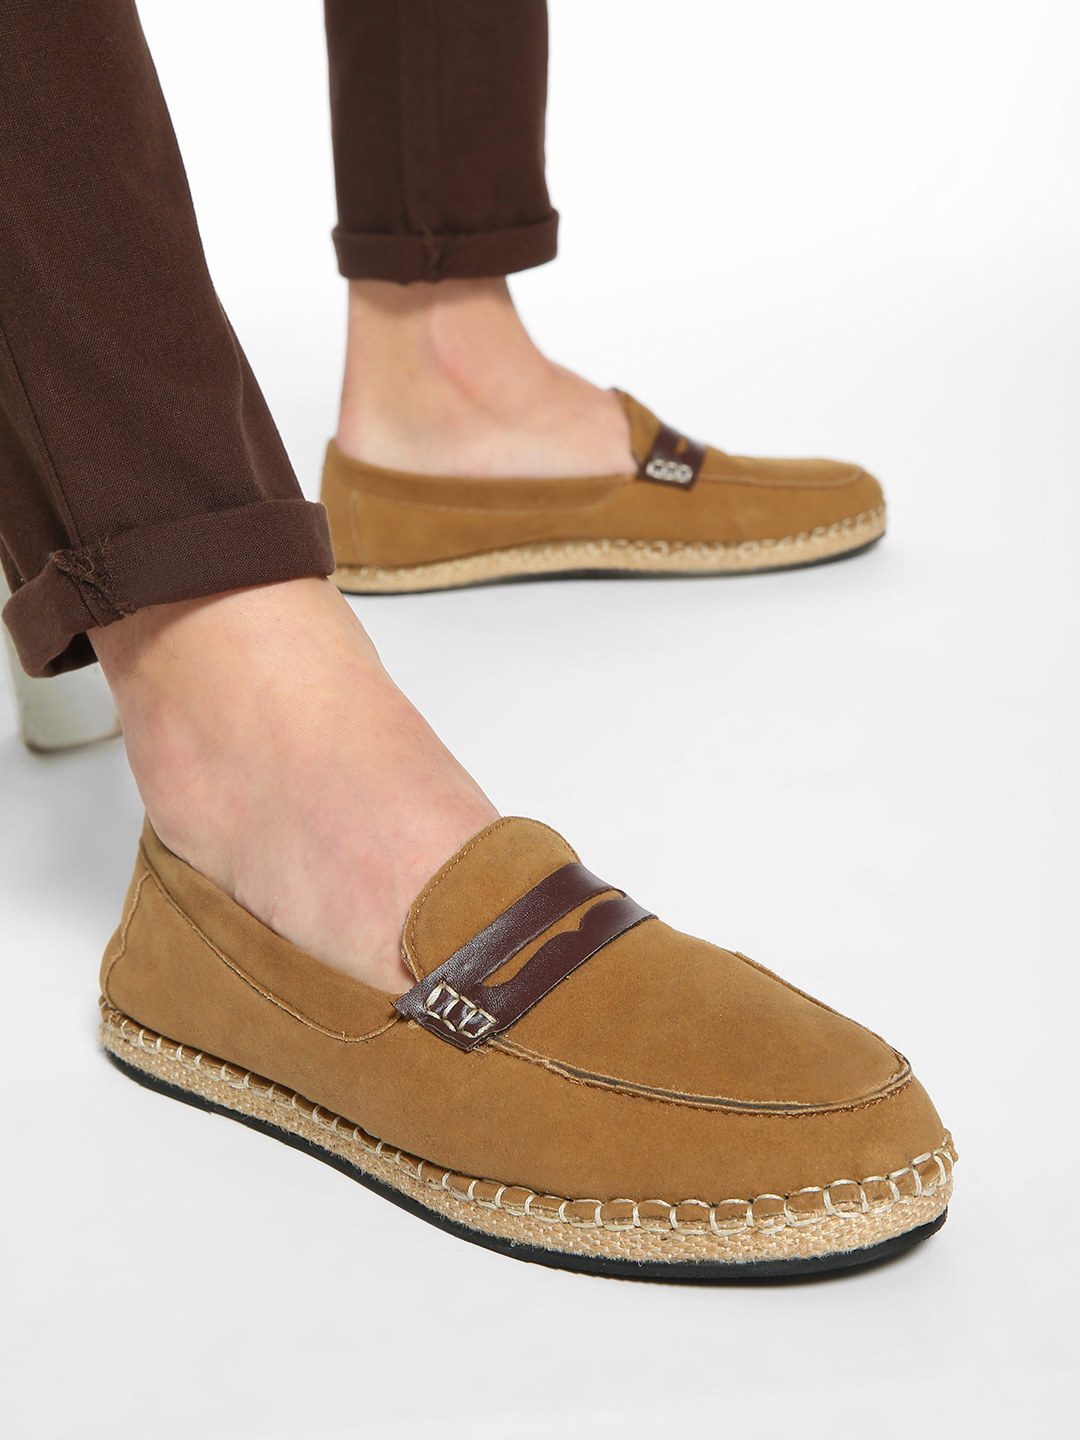 Bolt Of The Good Stuff Brown Suede Penny Loafer Espadrilles 1